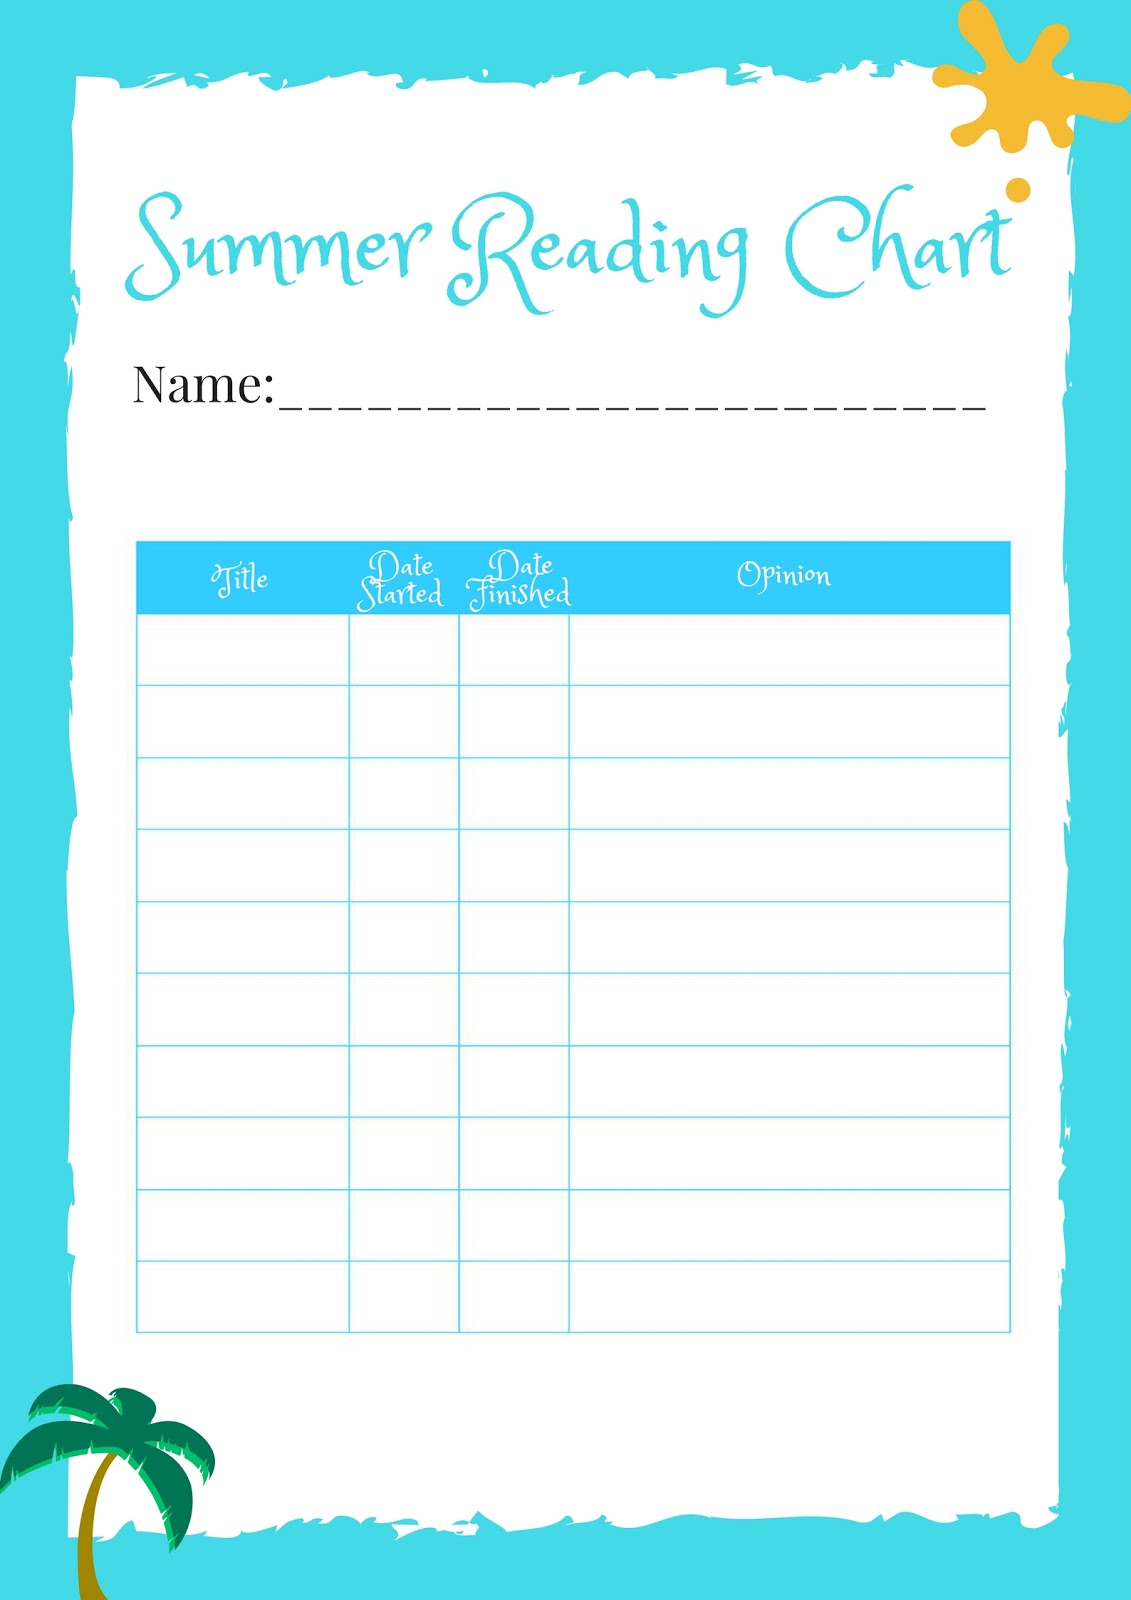 Summer Reading Charts For Kids